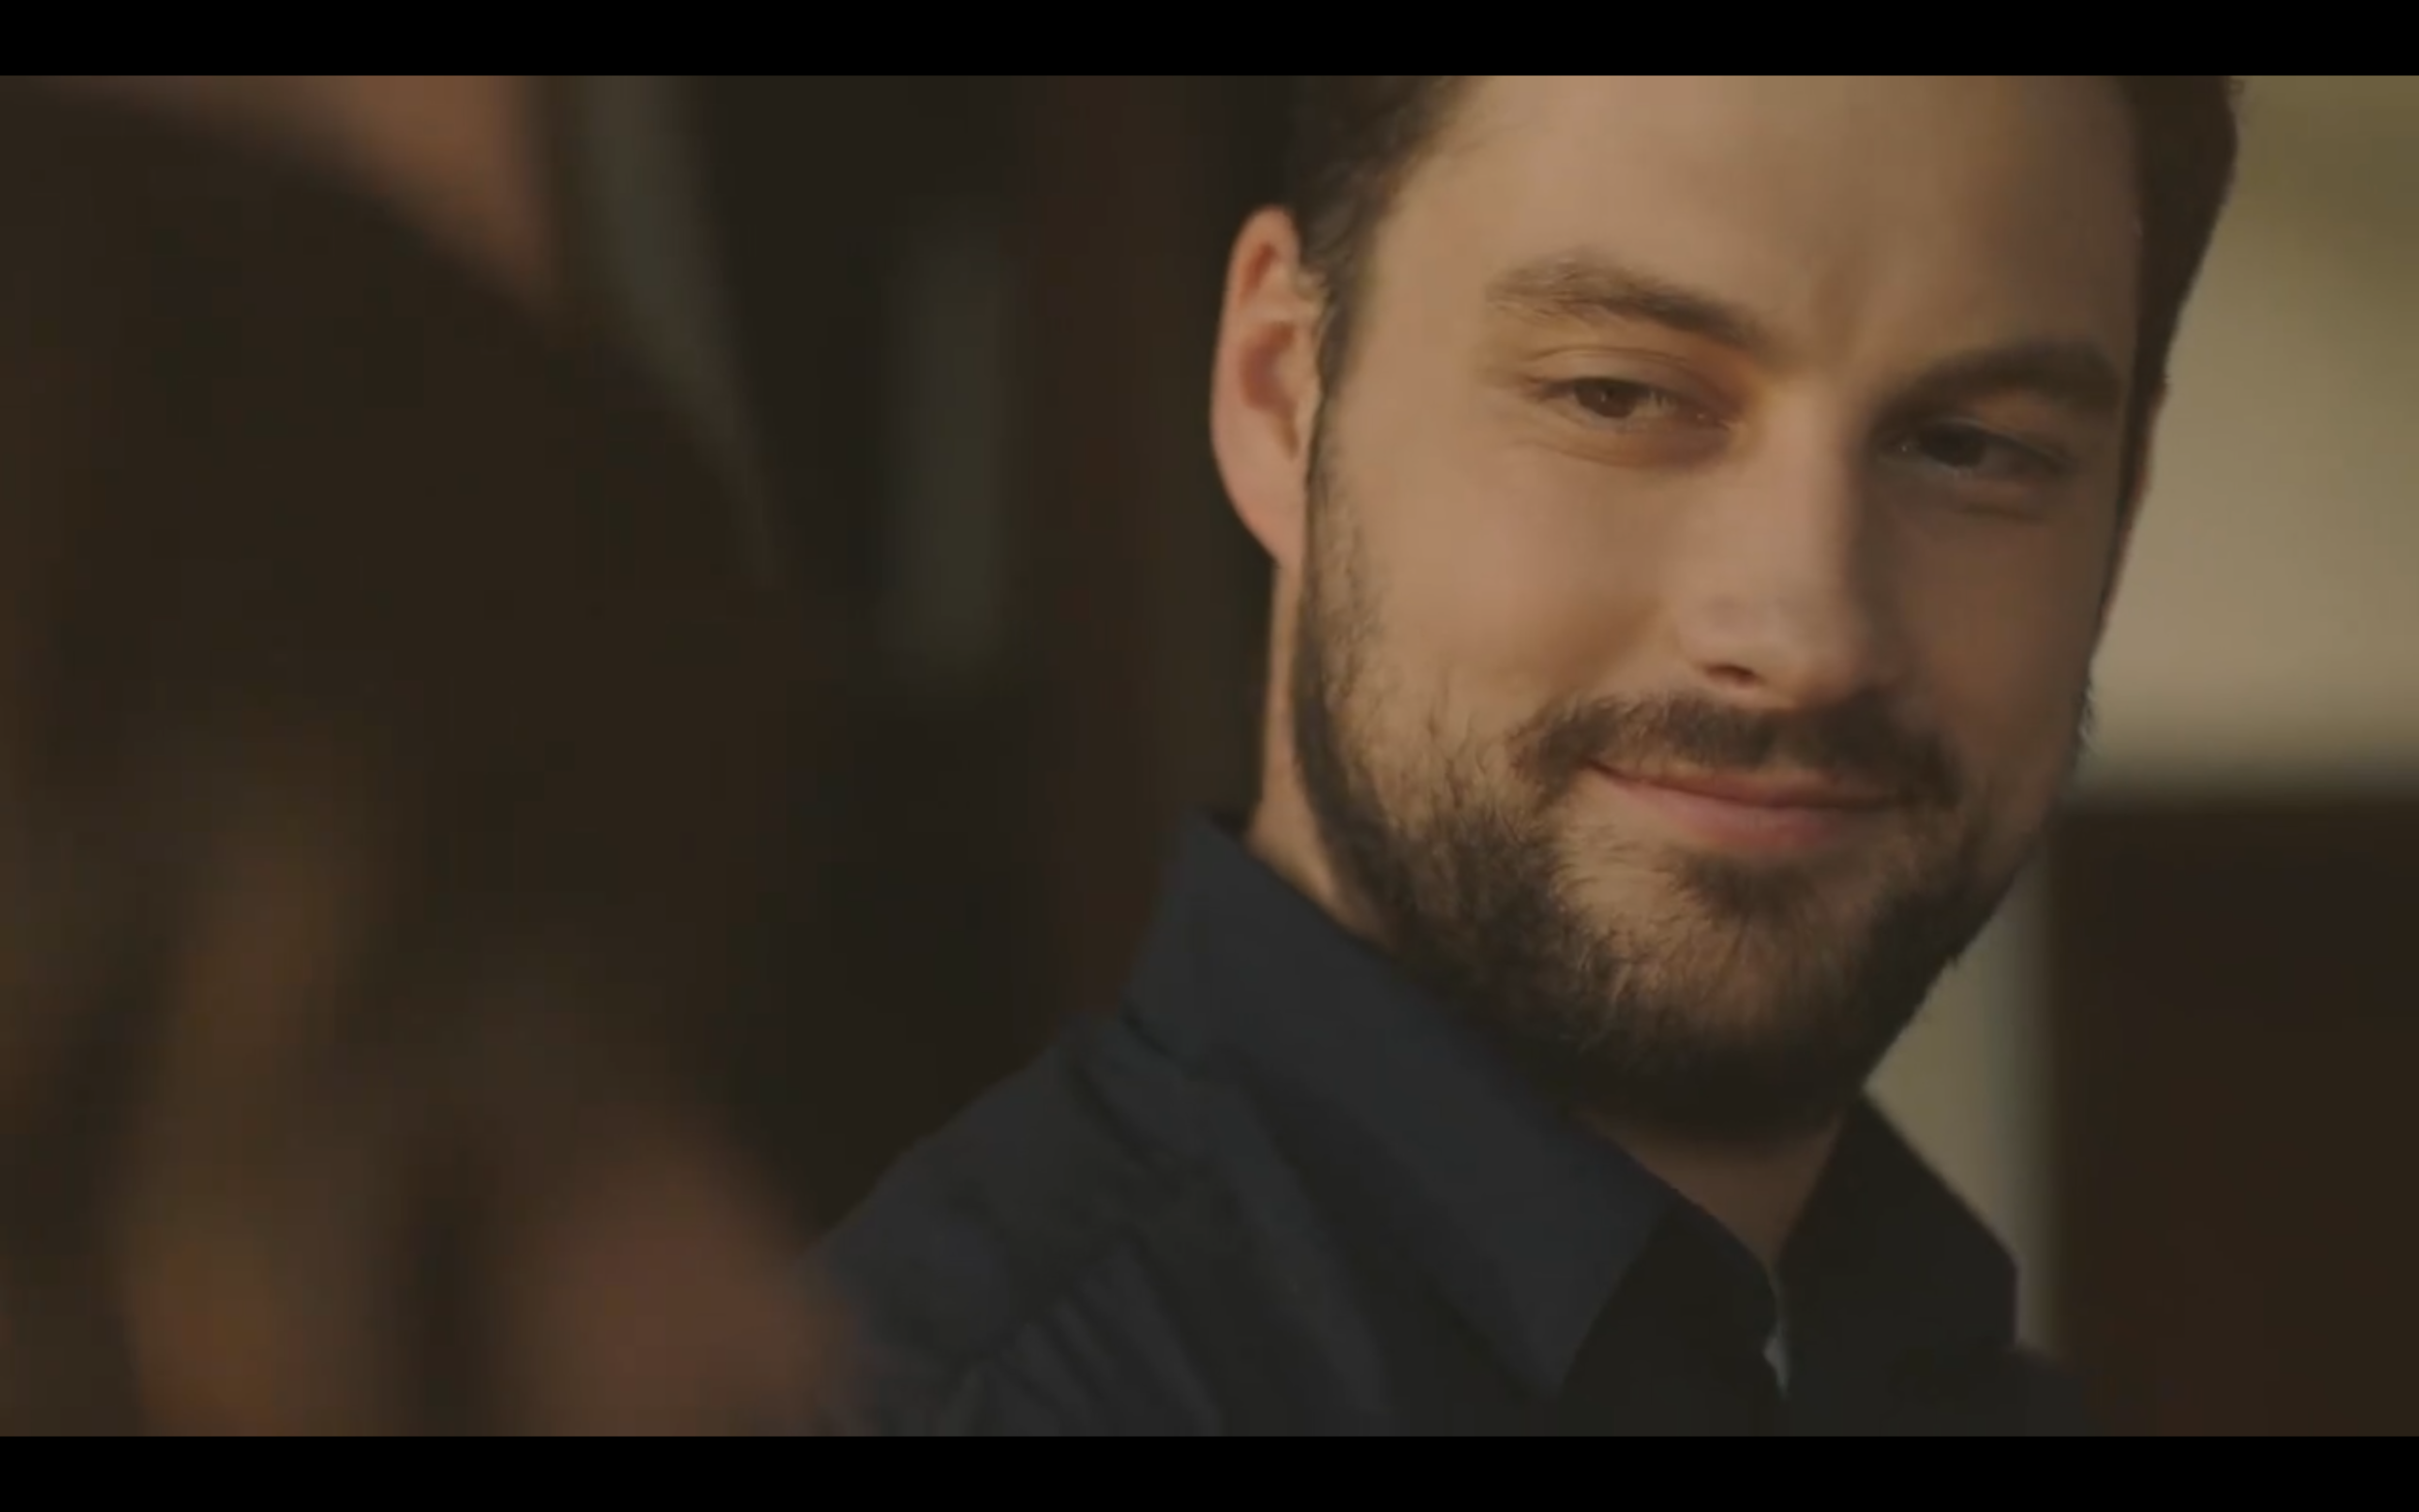 """Screengrab: Matej Loub in """"Never Let Me Go"""" for ASUS Philippines"""